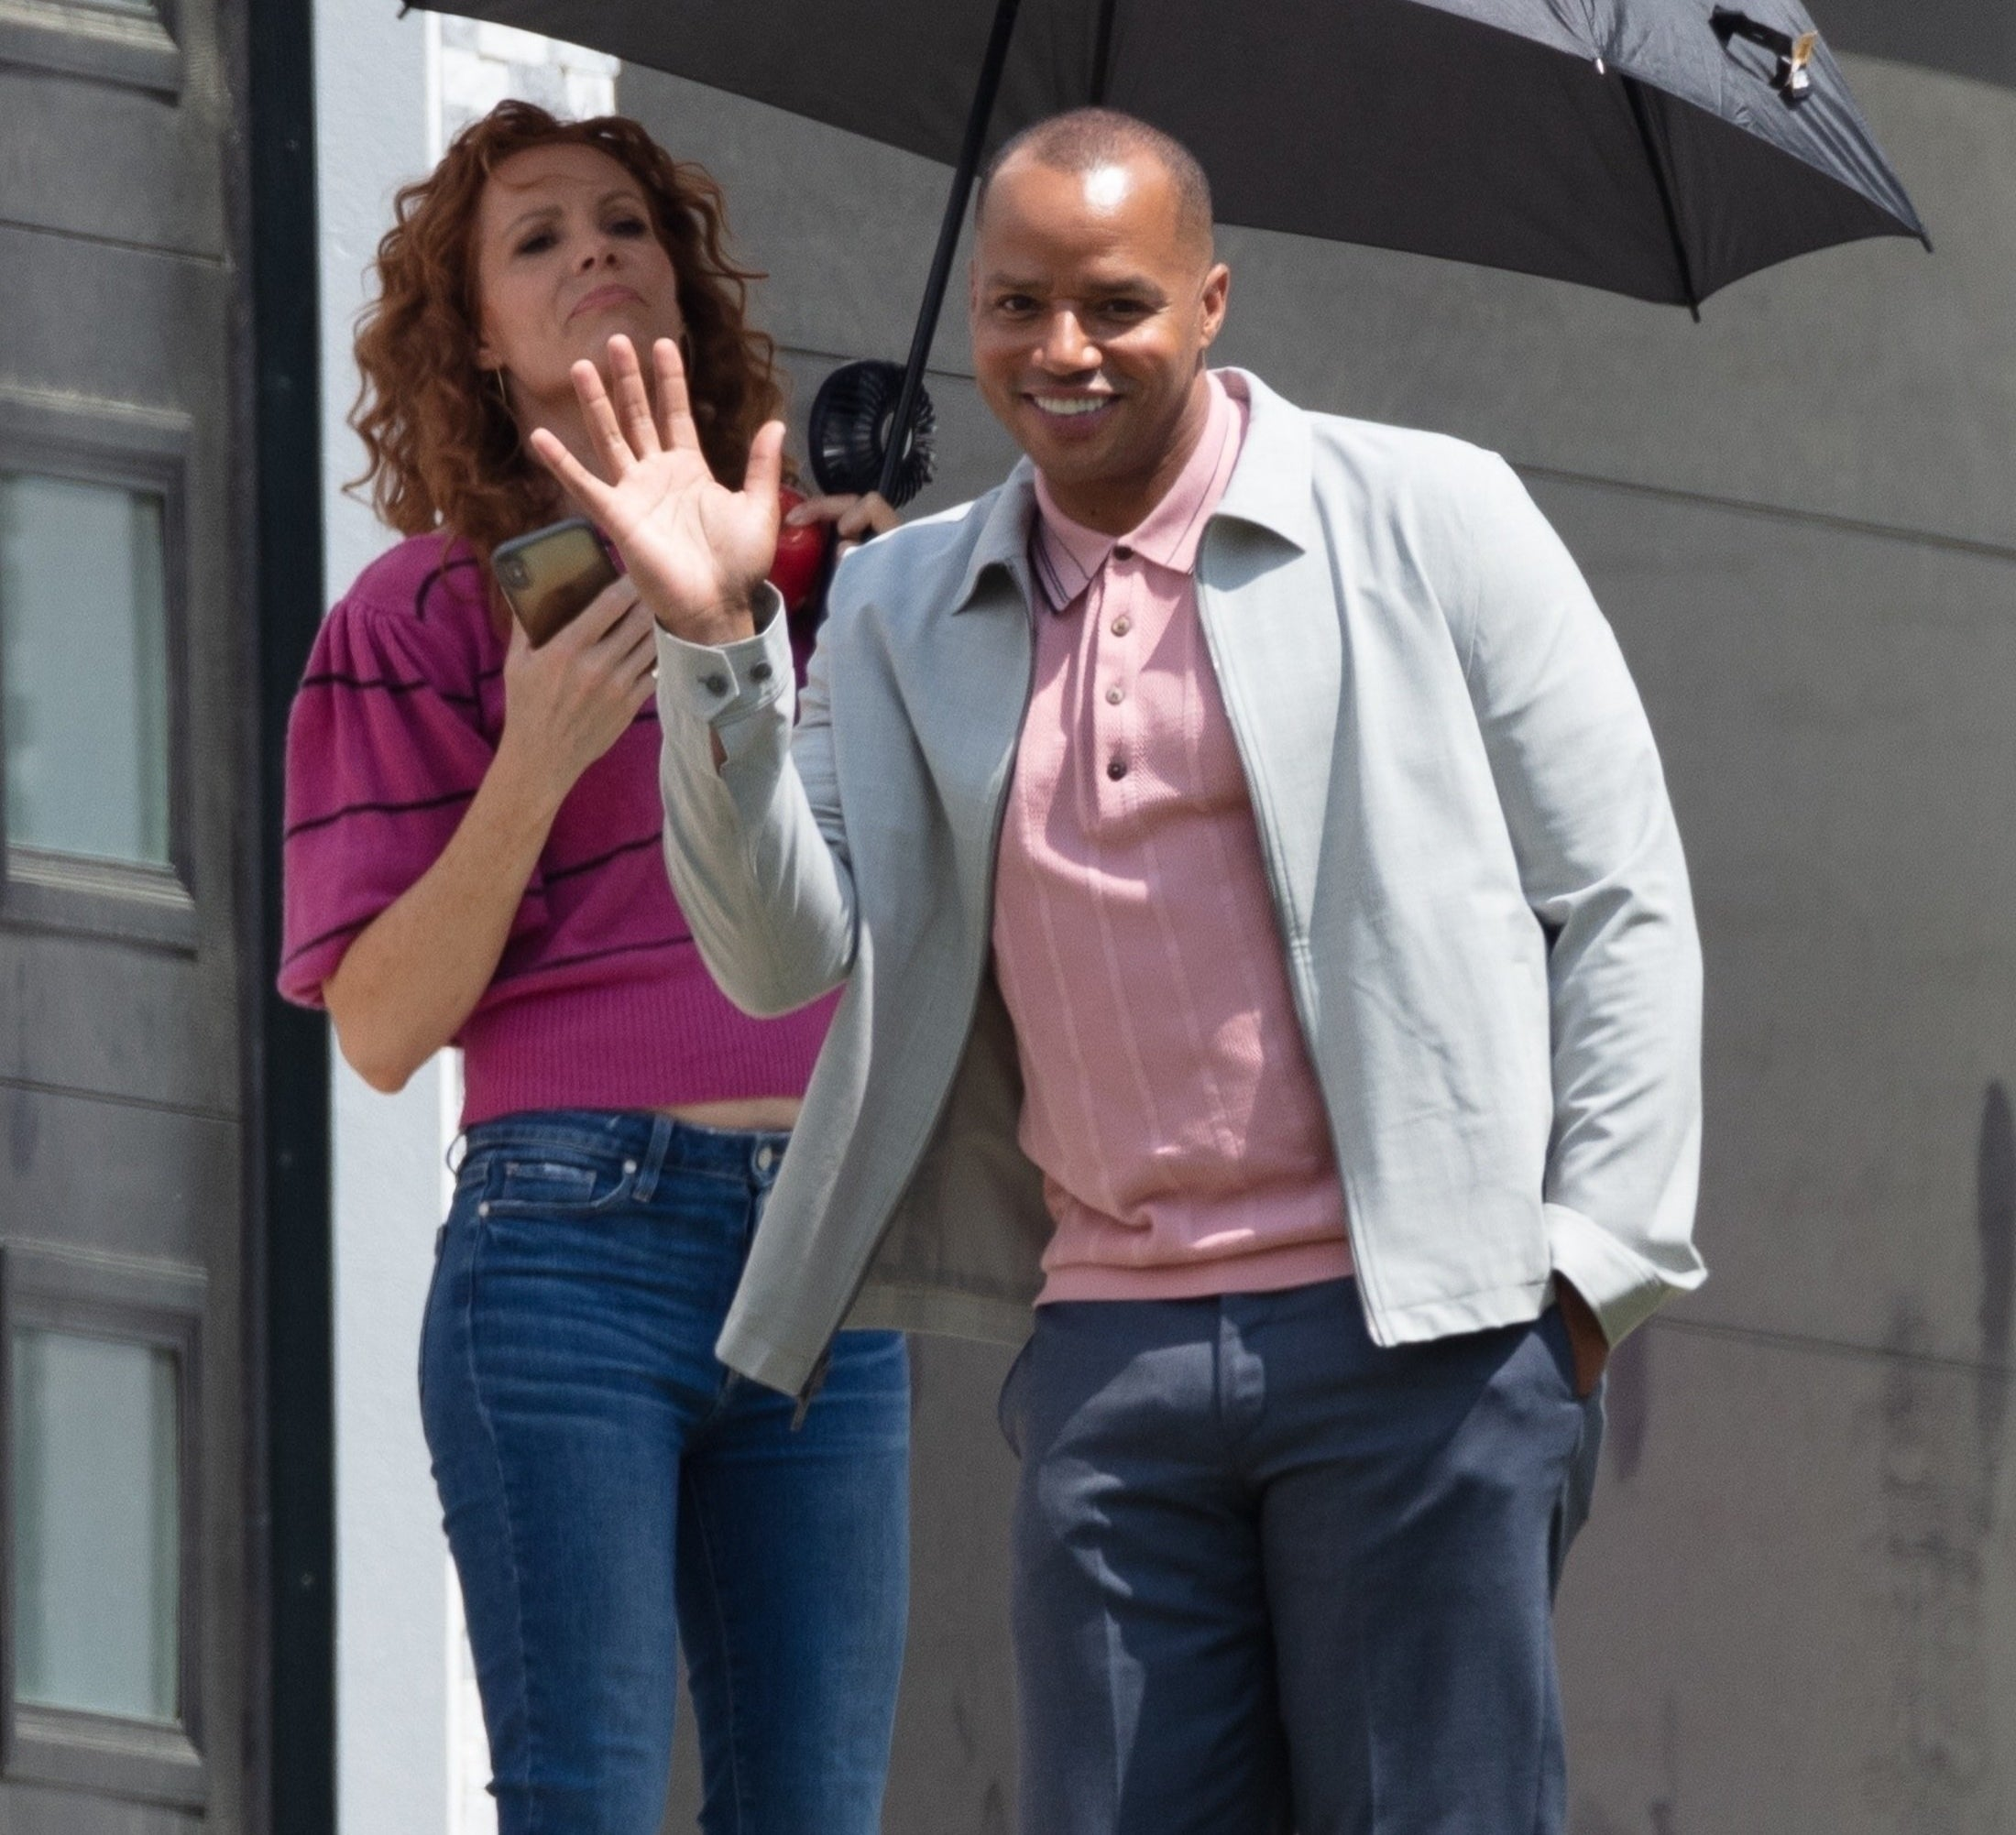 Donald Faison waving on set as someone holds an umbrella over his head